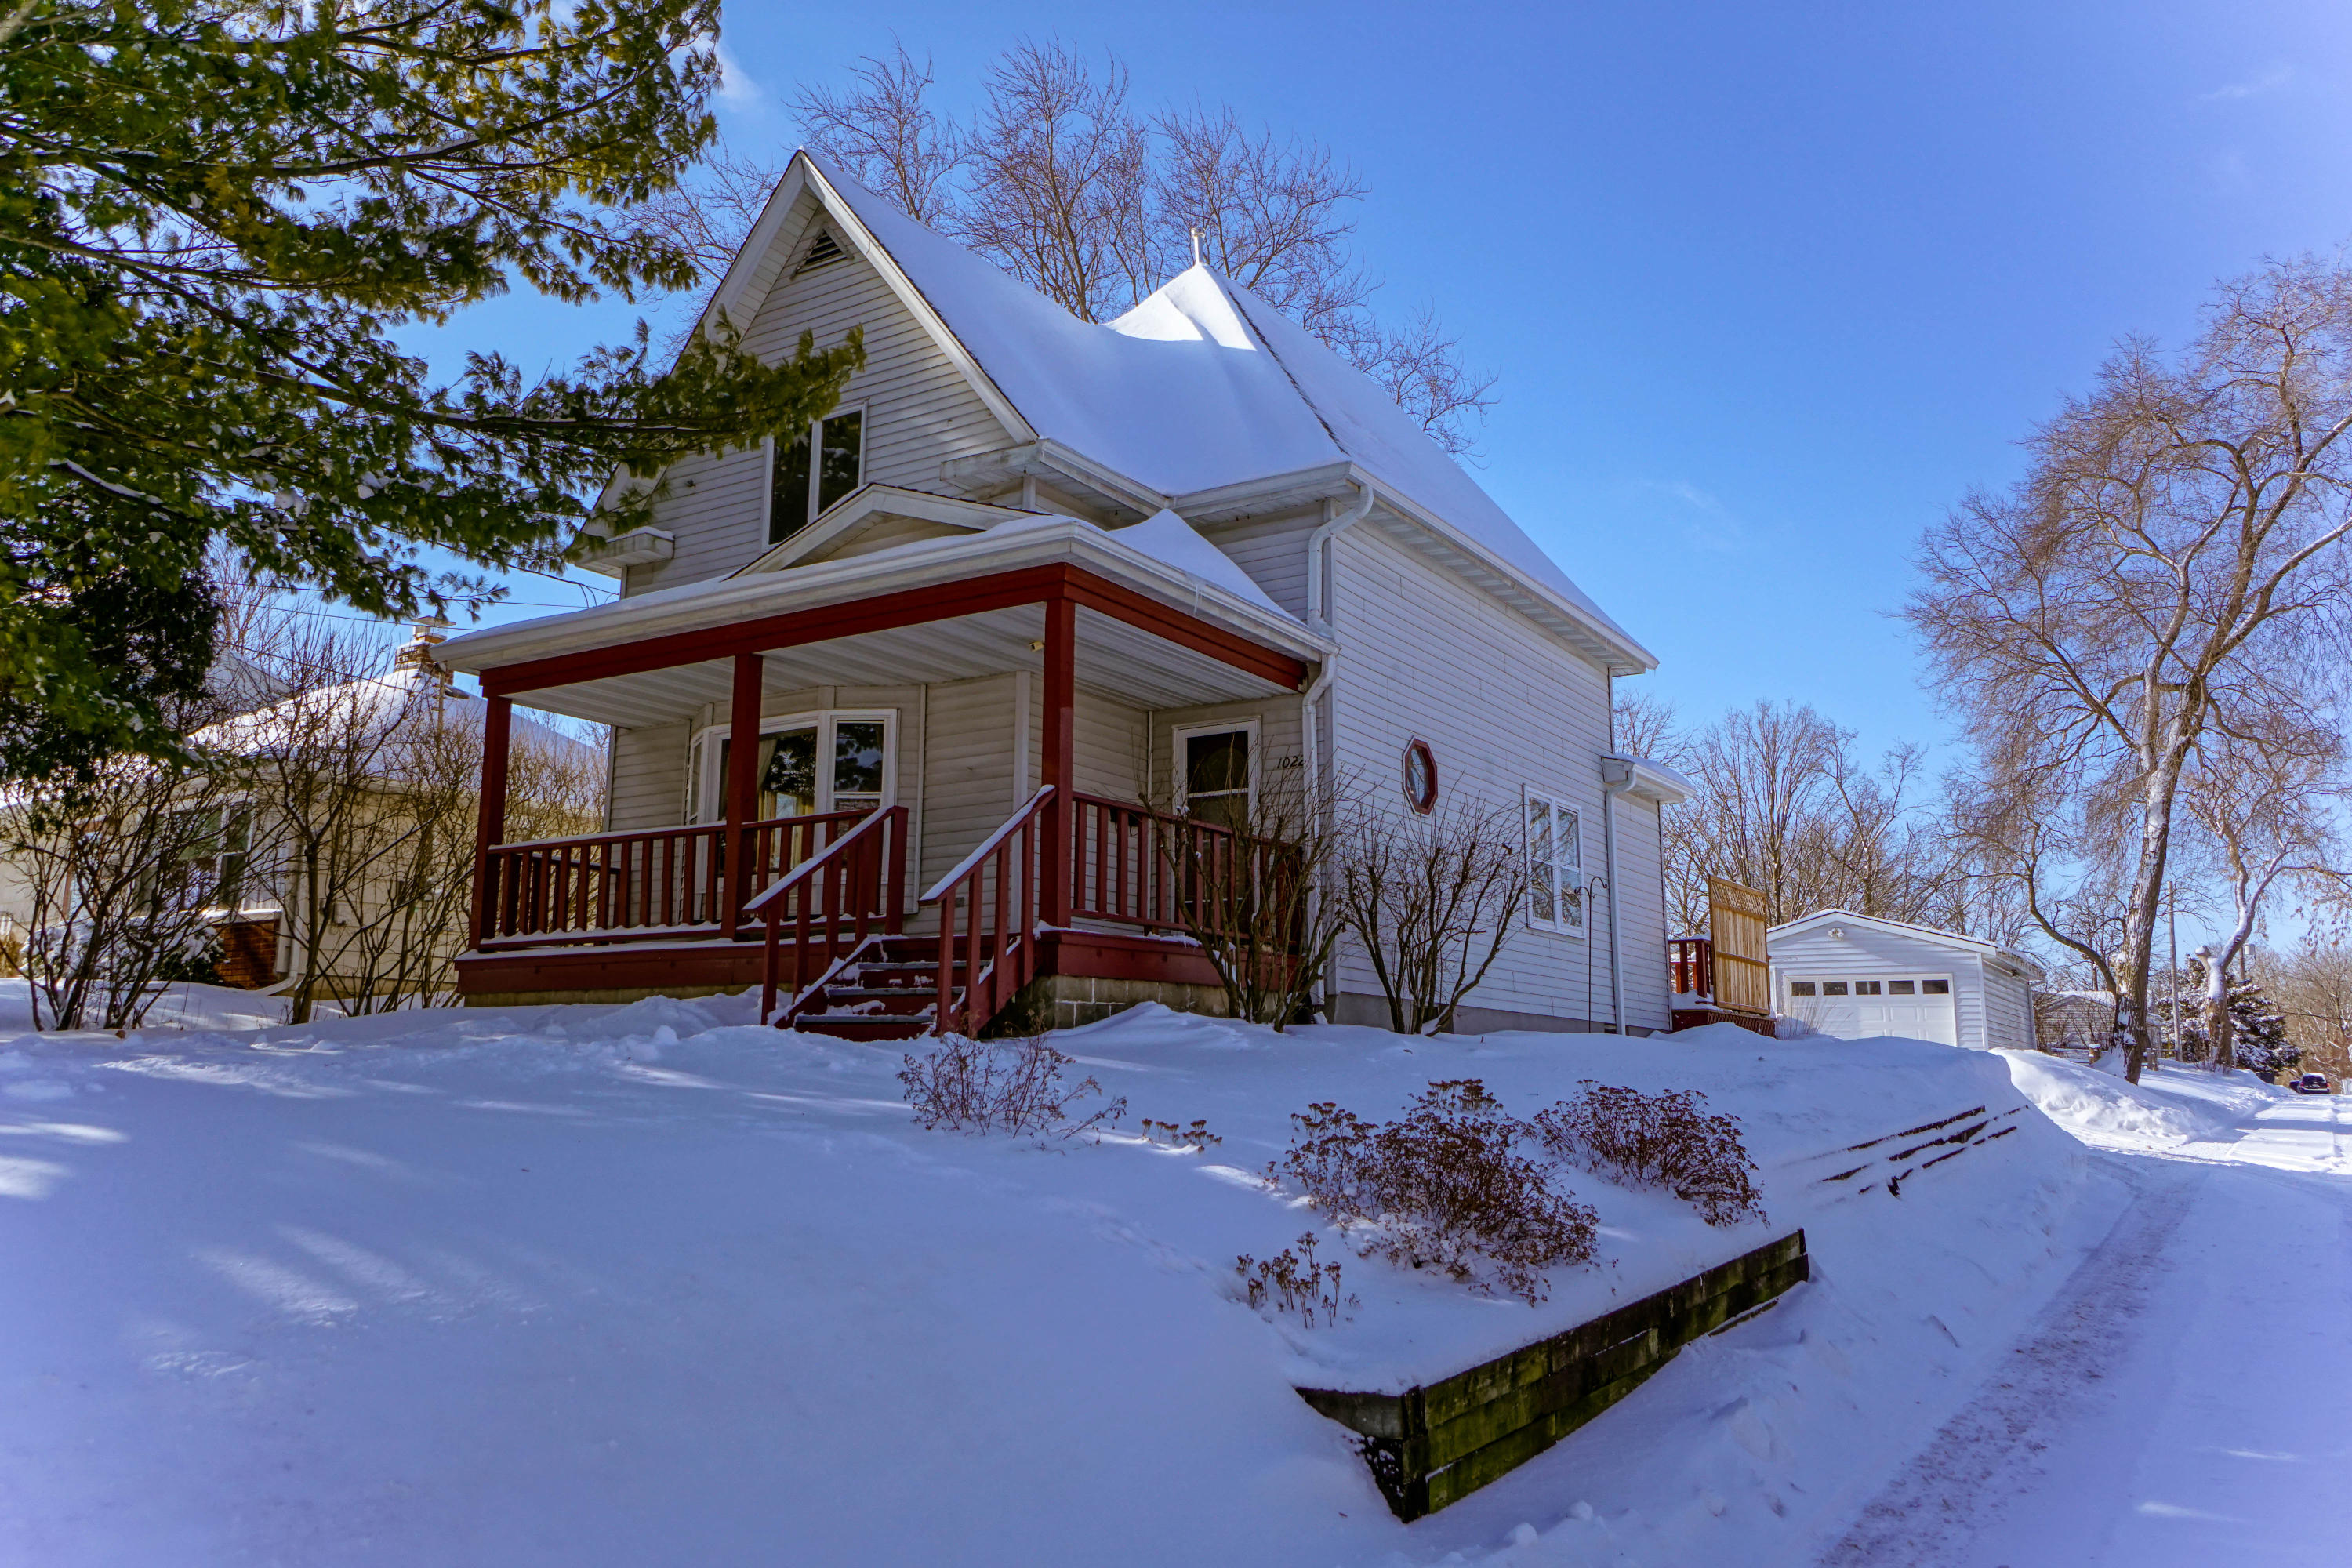 1022 Oakland Ave, Waukesha, Wisconsin 53186, 3 Bedrooms Bedrooms, 6 Rooms Rooms,1 BathroomBathrooms,Single-Family,For Sale,Oakland Ave,1622739